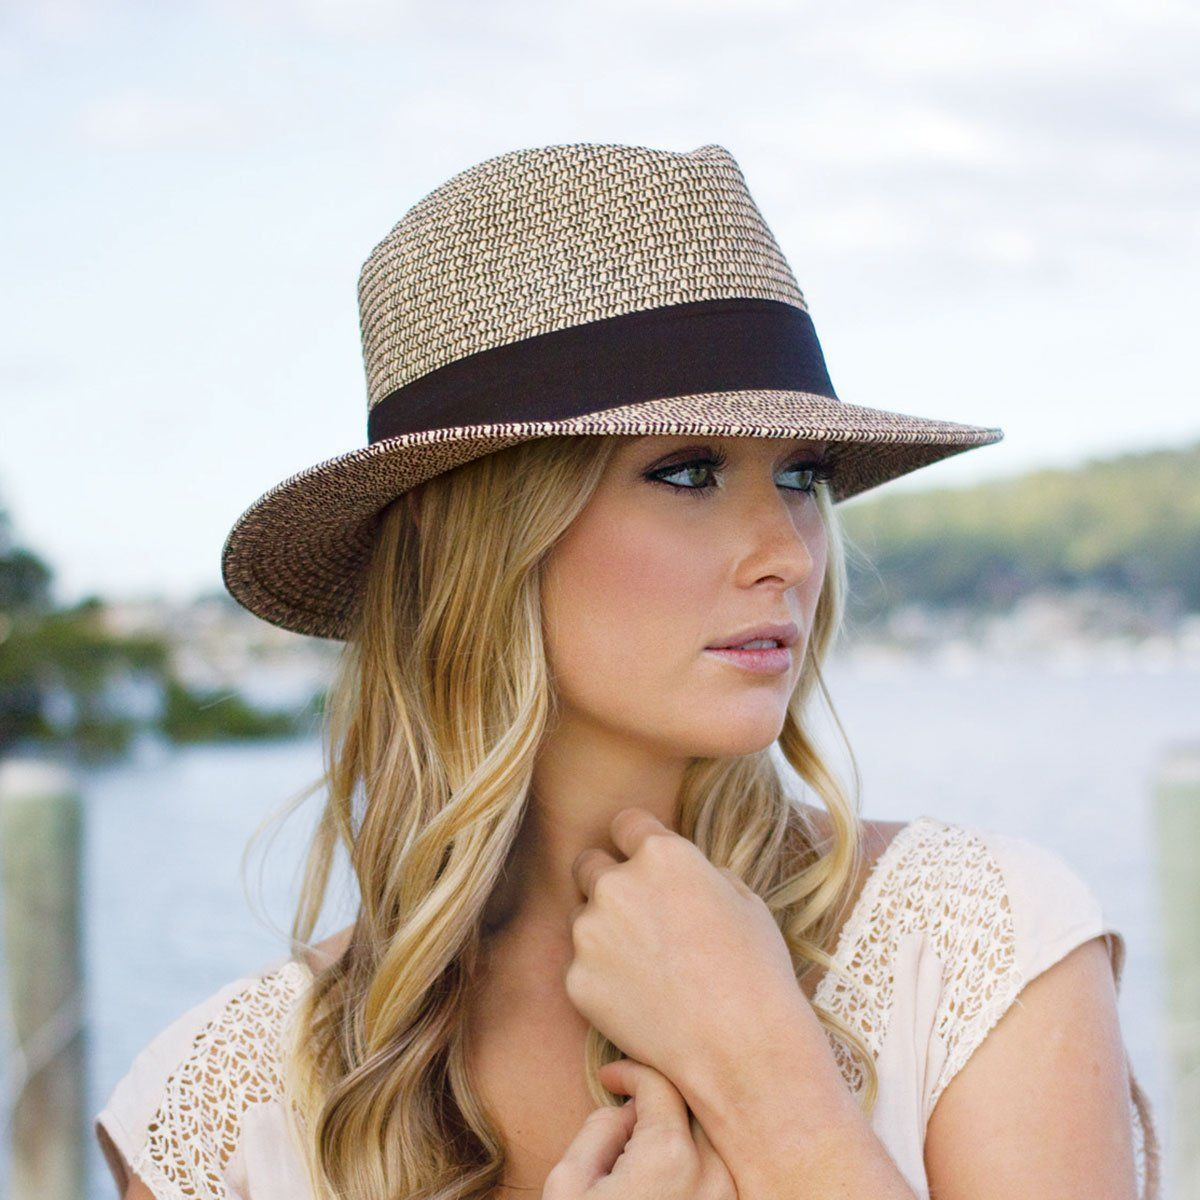 Josie | Summer hats for women, Sun hats for women, Outfits with hats